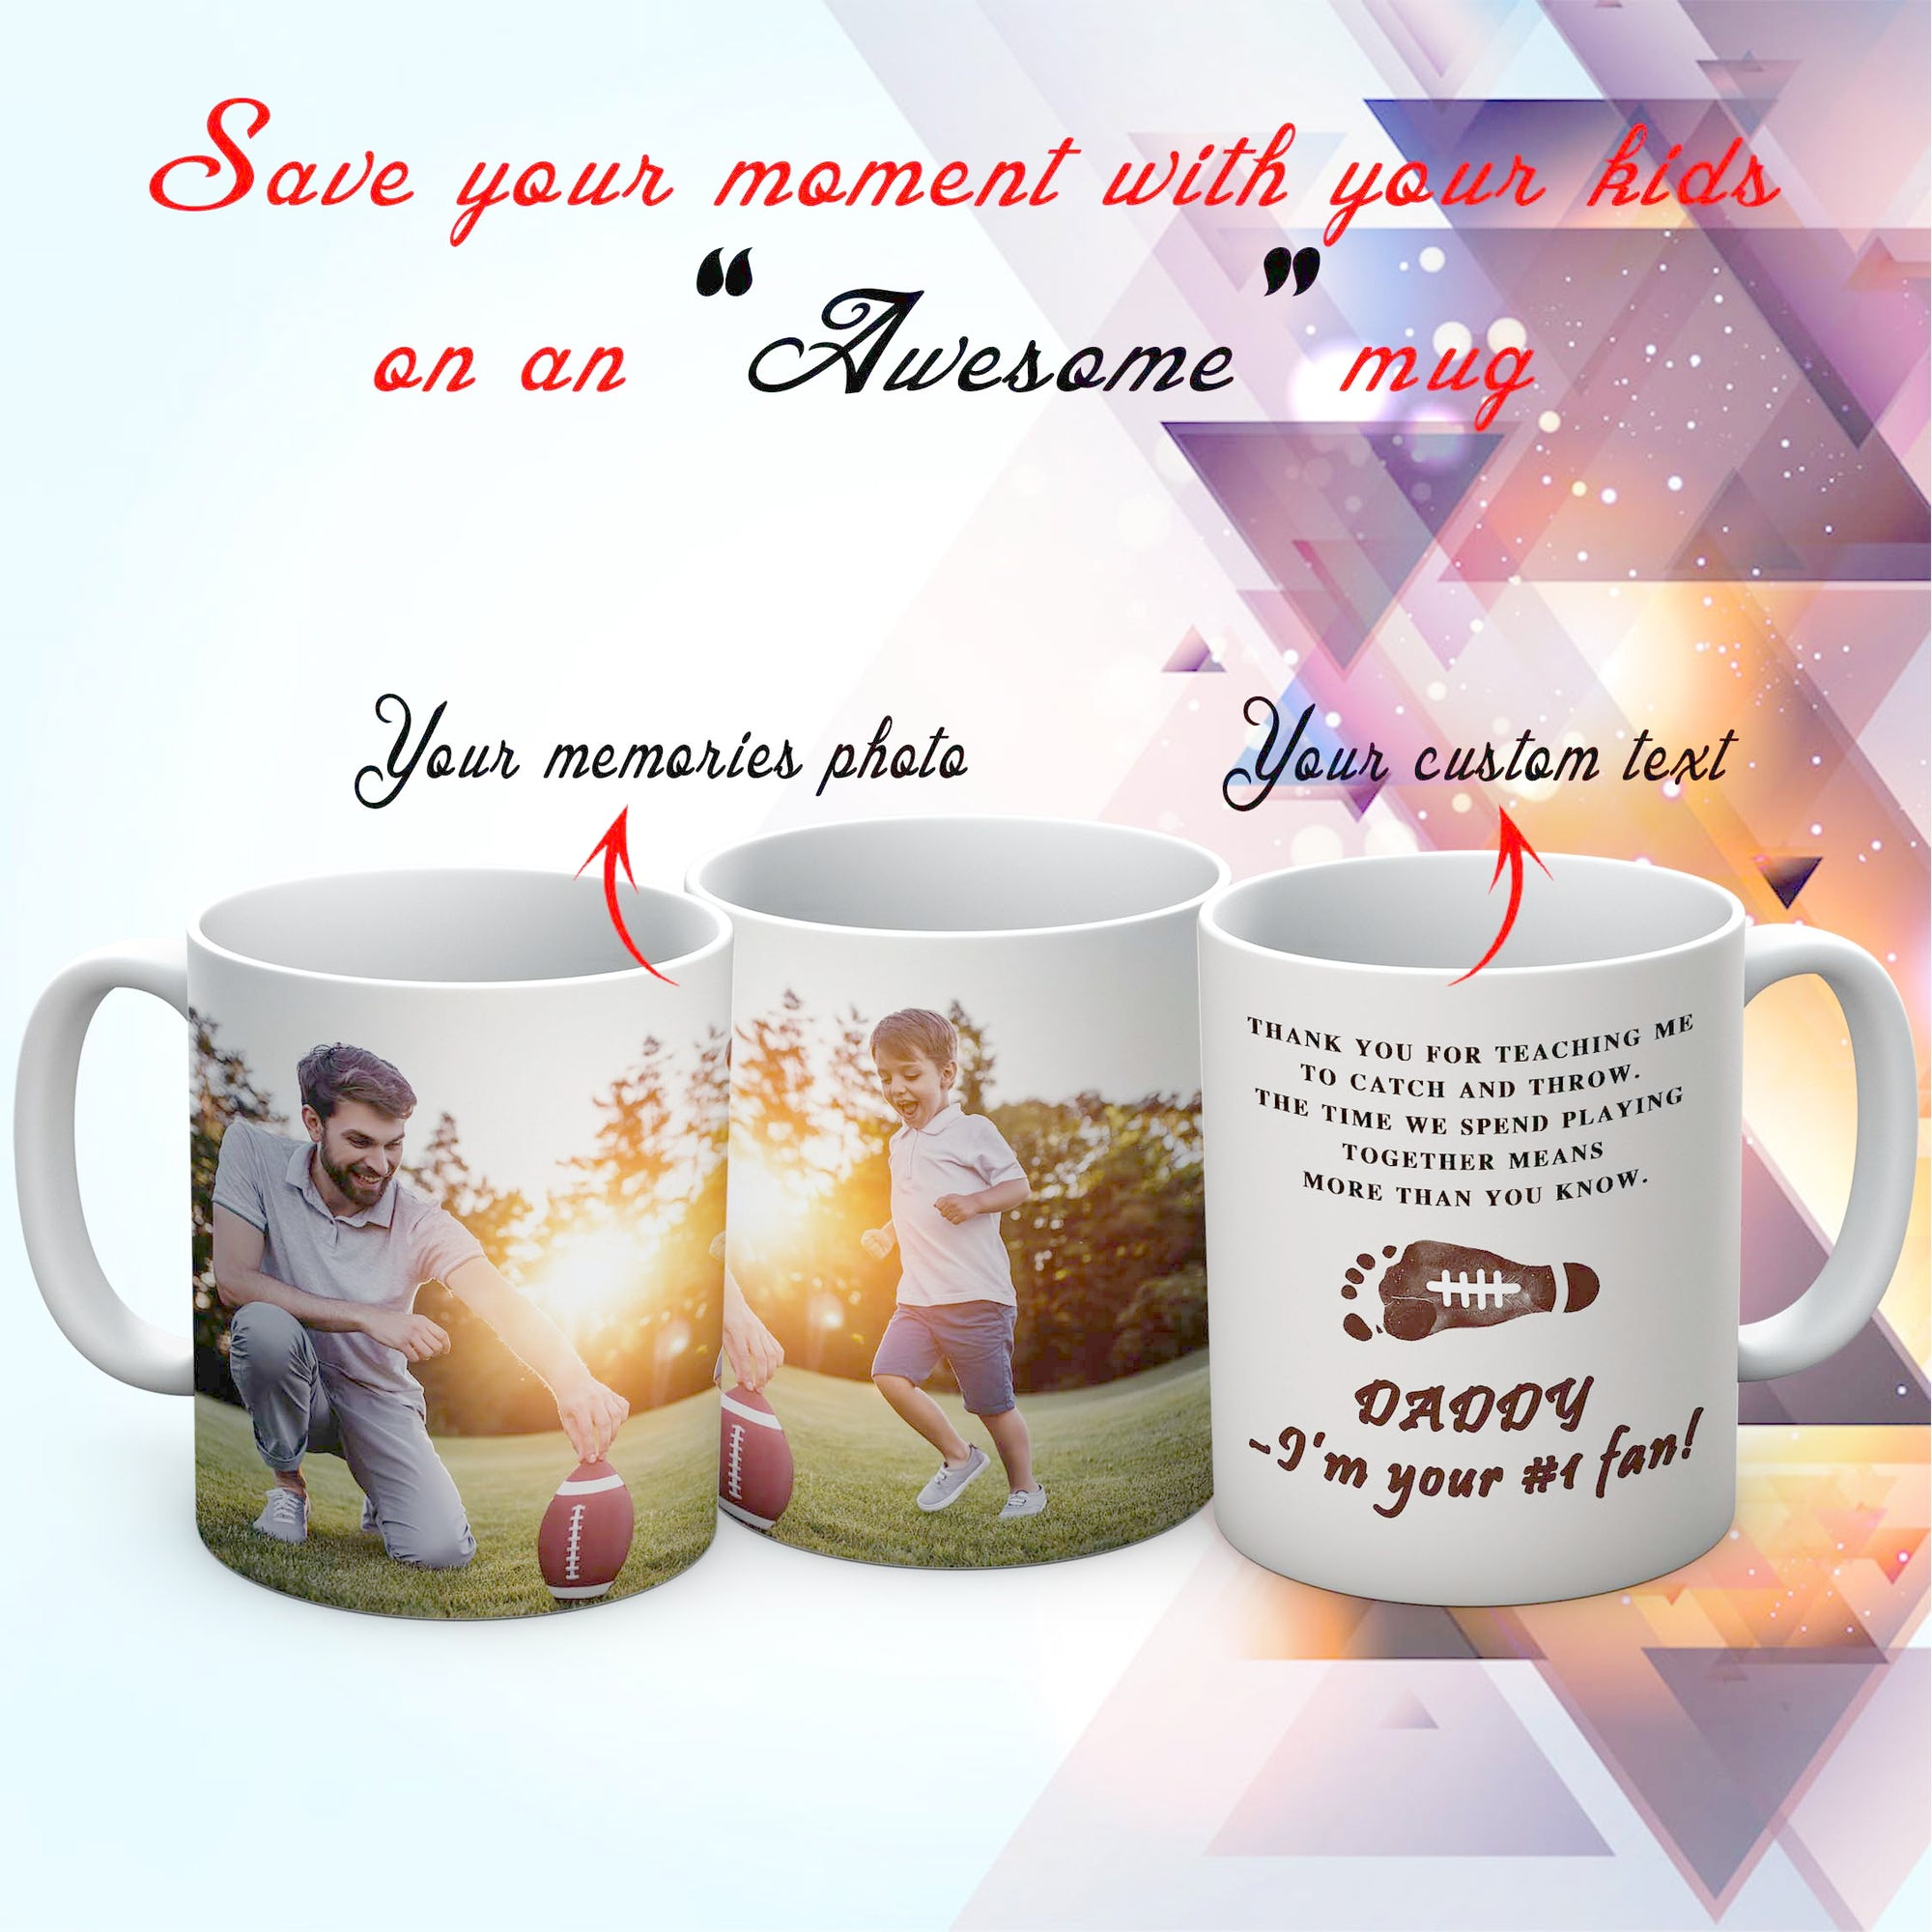 PERSONALIZED MUG - SAVE YOUR MOMENT WITH YOUR KIDS ON YOUR MUG